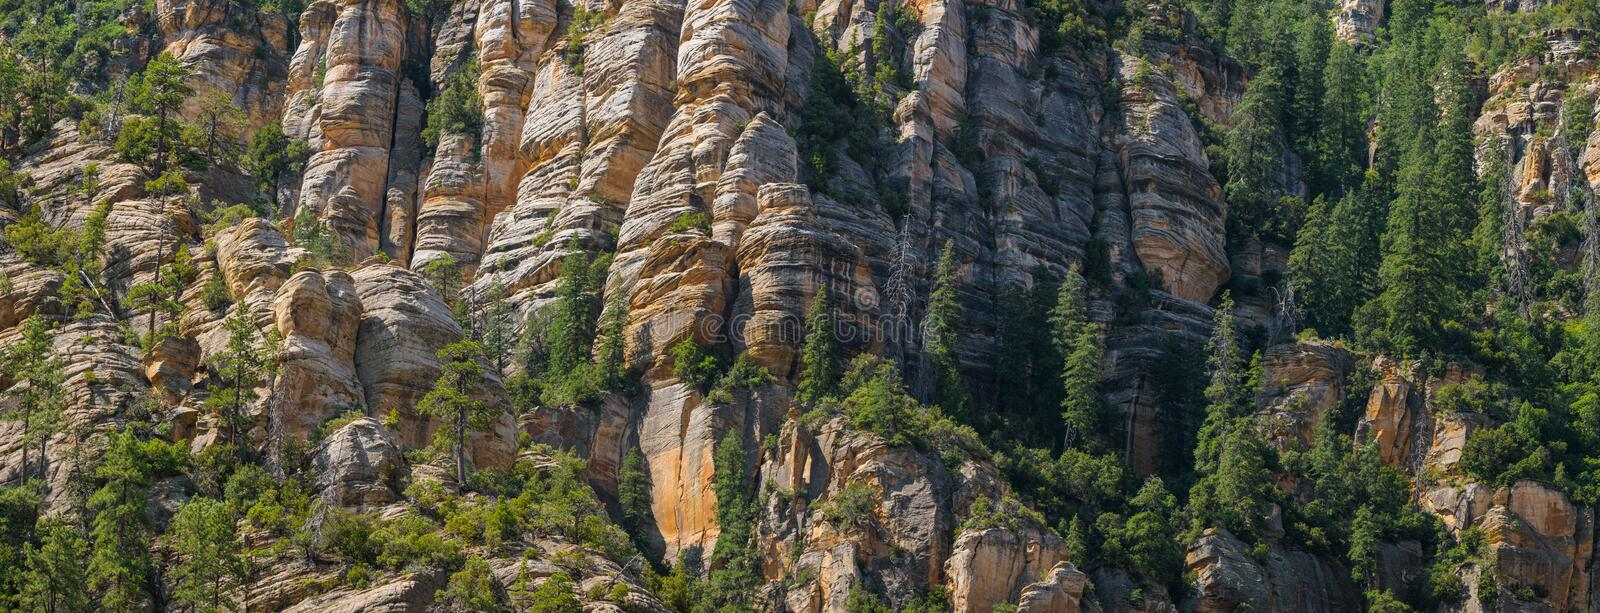 Panorama of a steep mountainside of sandstone cliffs with pine trees clinging to them. Trees cling to steep cliffs on a mountainside above Sedona, Arizona stock photo